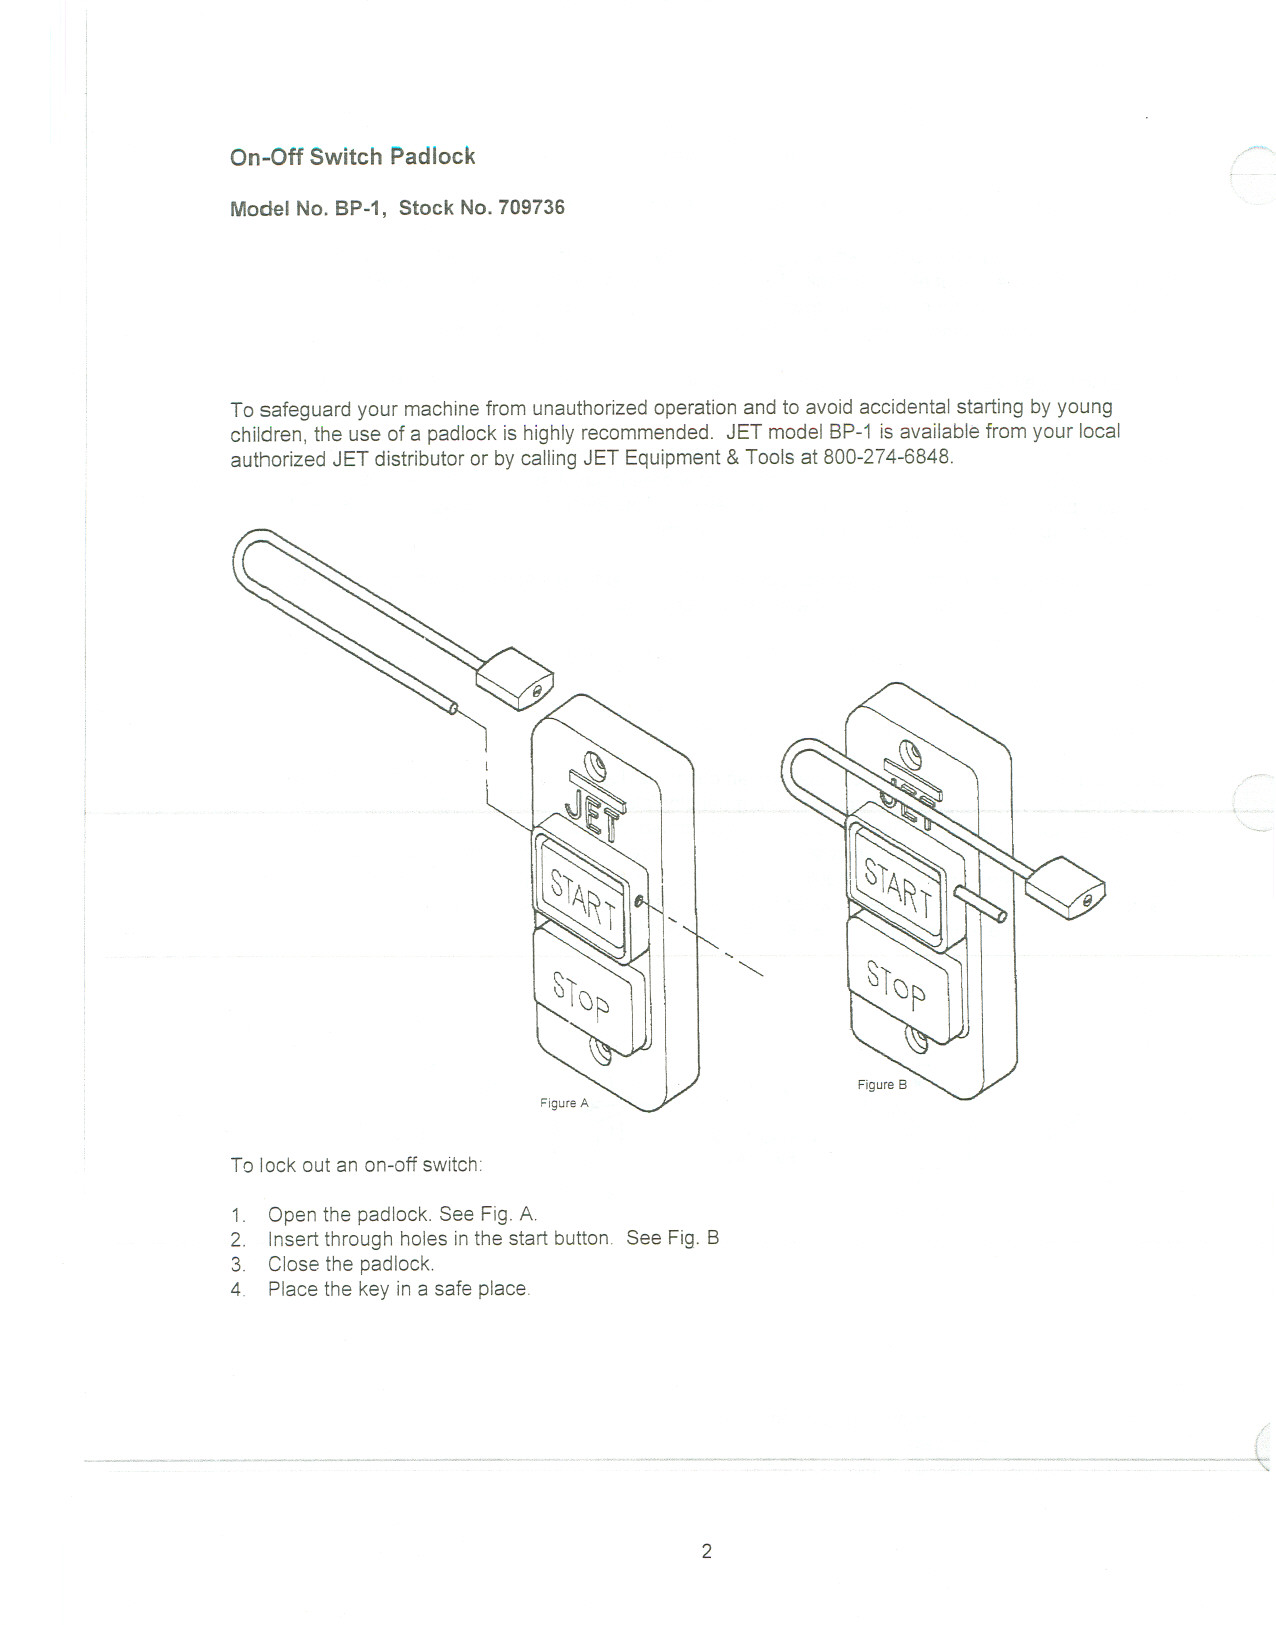 MANUAL000057398.pdf 5 pdf manual for jet other jwl 1236 lathe machine  at crackthecode.co